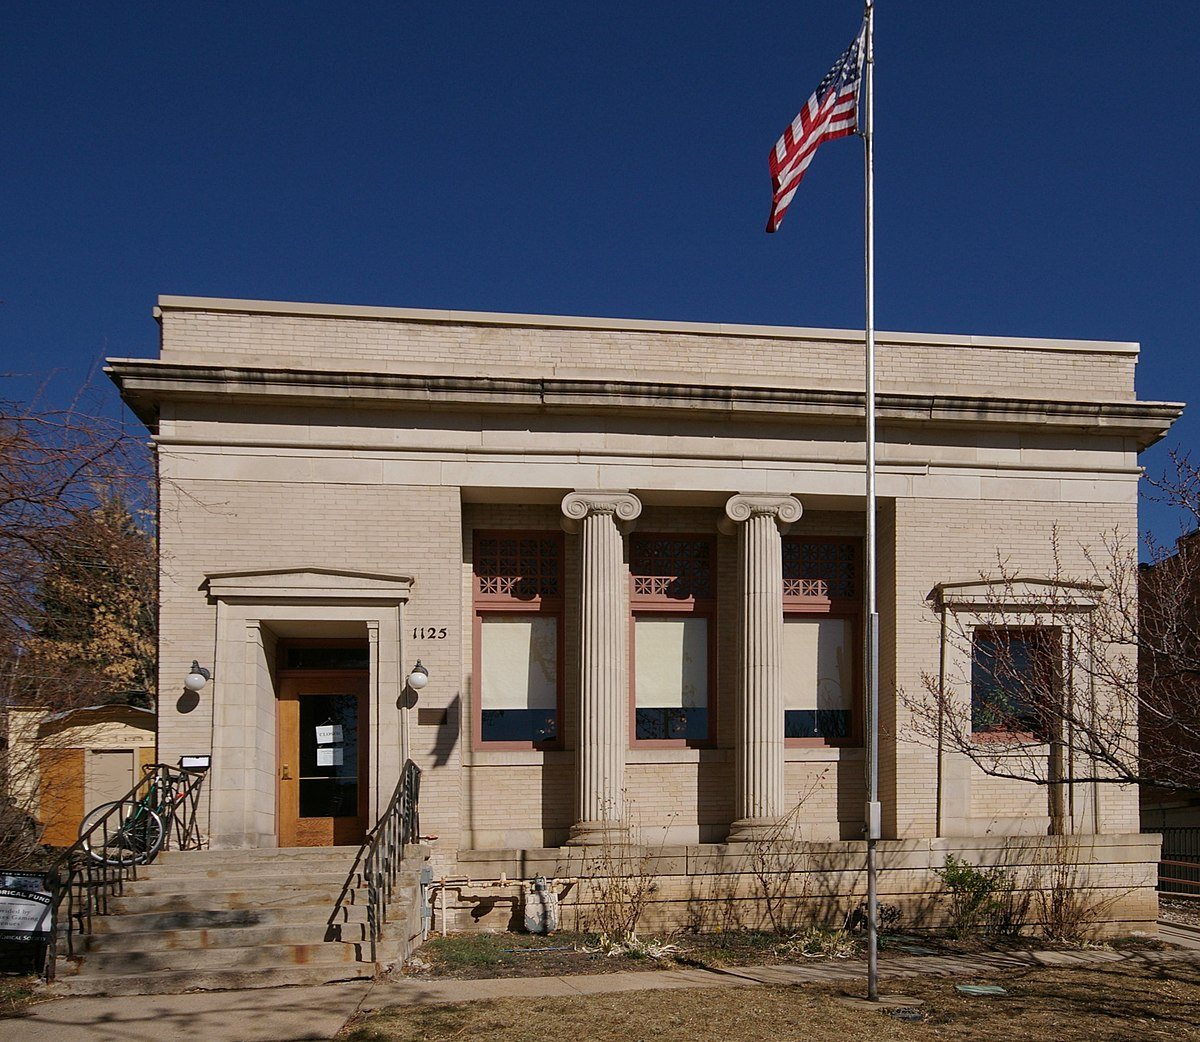 carnegie library boulder colorado wikipedia